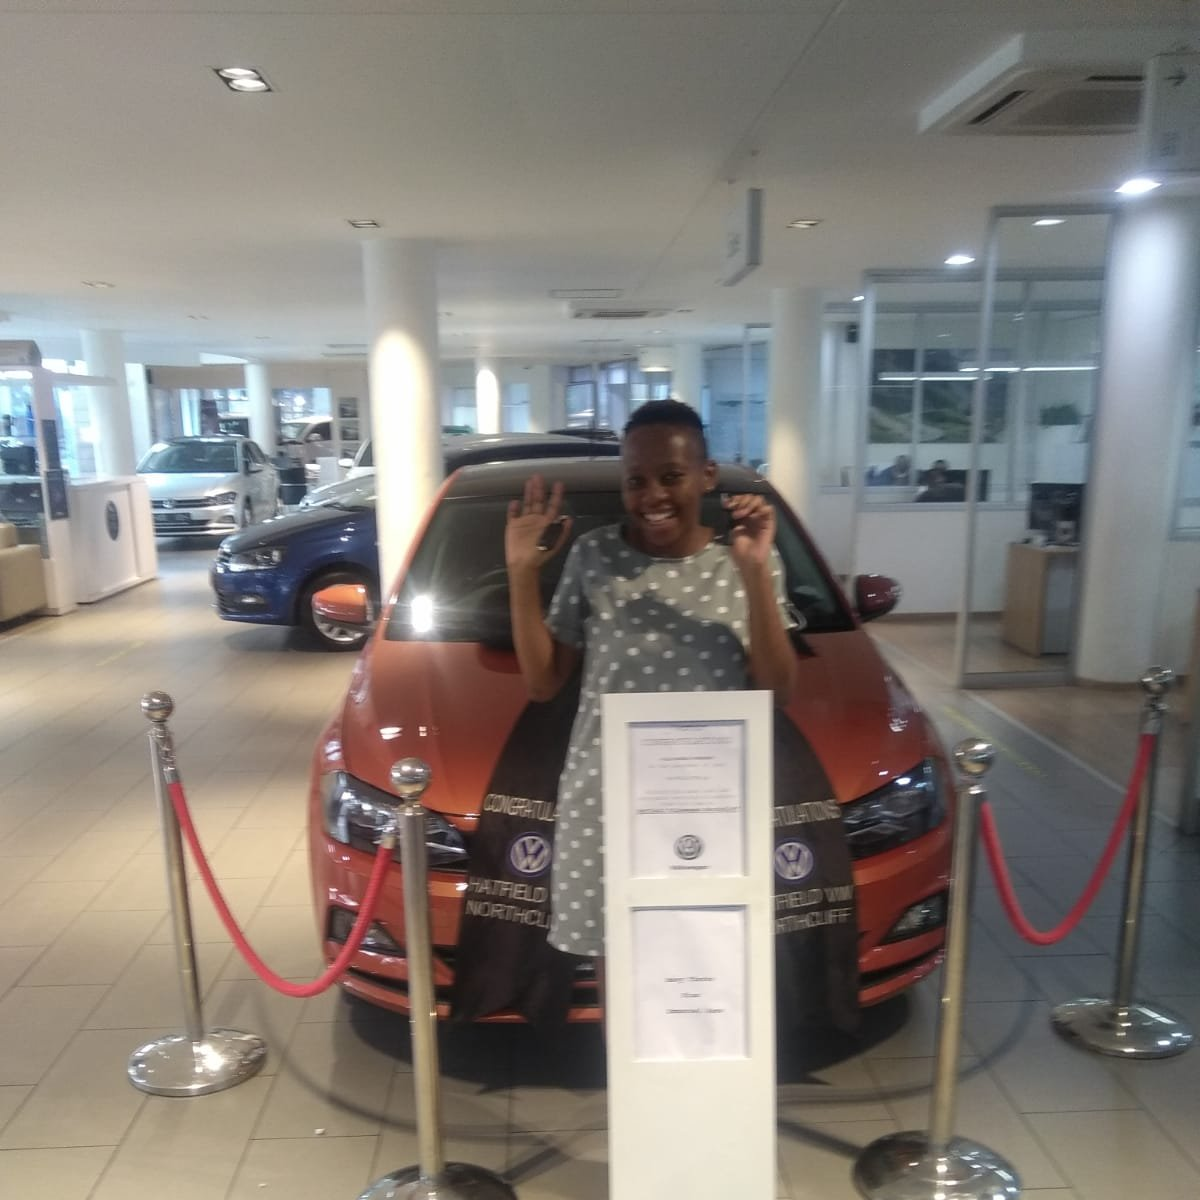 Congratulations to Miss Dakalo Makhado on her New Polo TSI Comfortline 💙🥳  Proudly sold by one of our new Sales Executives: Emmanuel Rams 👏 #hatfieldvwnorthcliff #vwpolo #mondaymotivation #mzansirides #carsofsouthafrica #vwpoloclub #johannesburg #ratedno1inservice